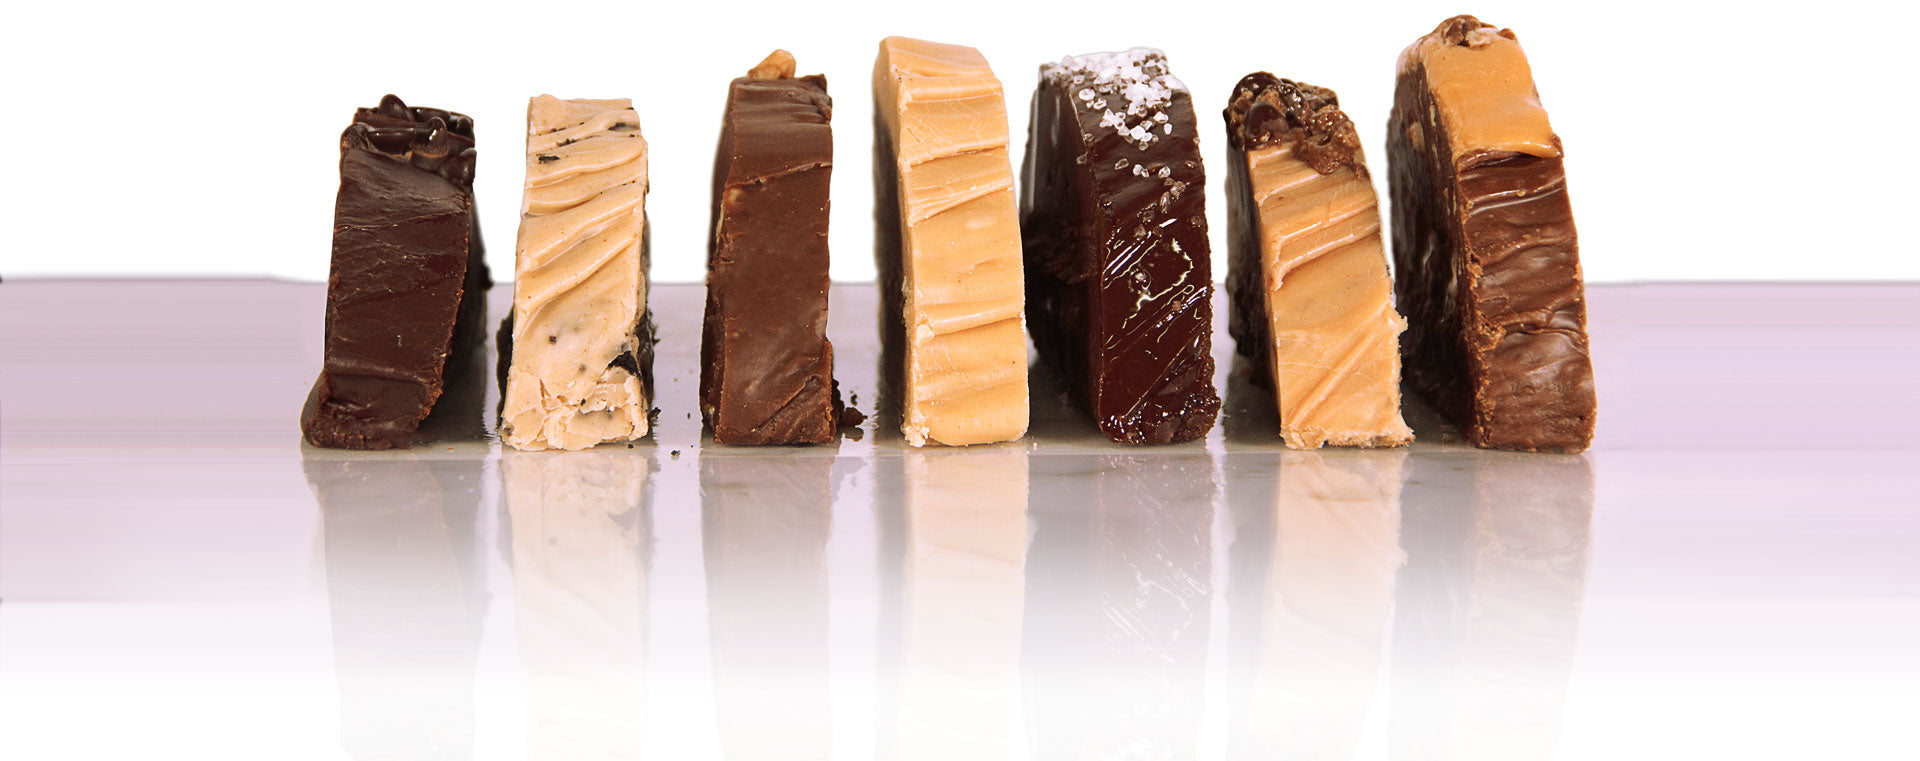 Buy 3 Get Your 4th Free Fudge Special. Flavors below.